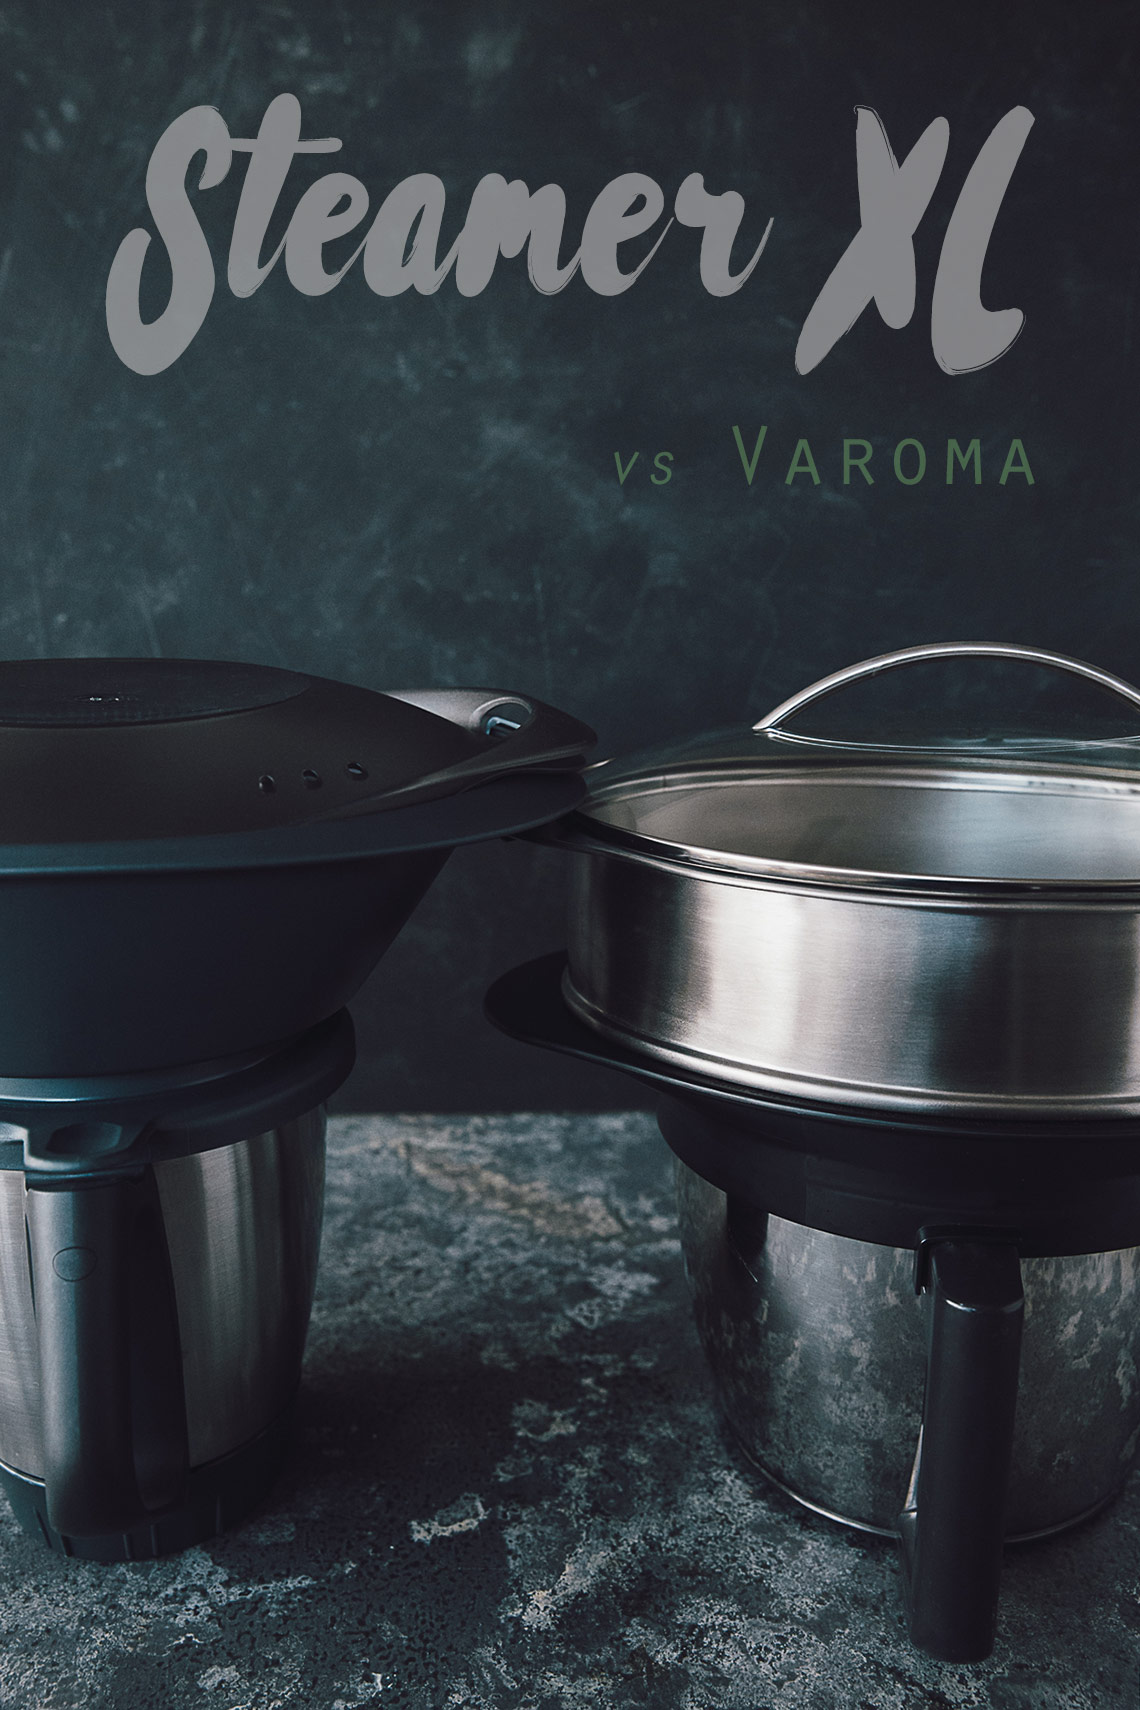 magimix steamer xl vs thermomix varoma the flo. Black Bedroom Furniture Sets. Home Design Ideas